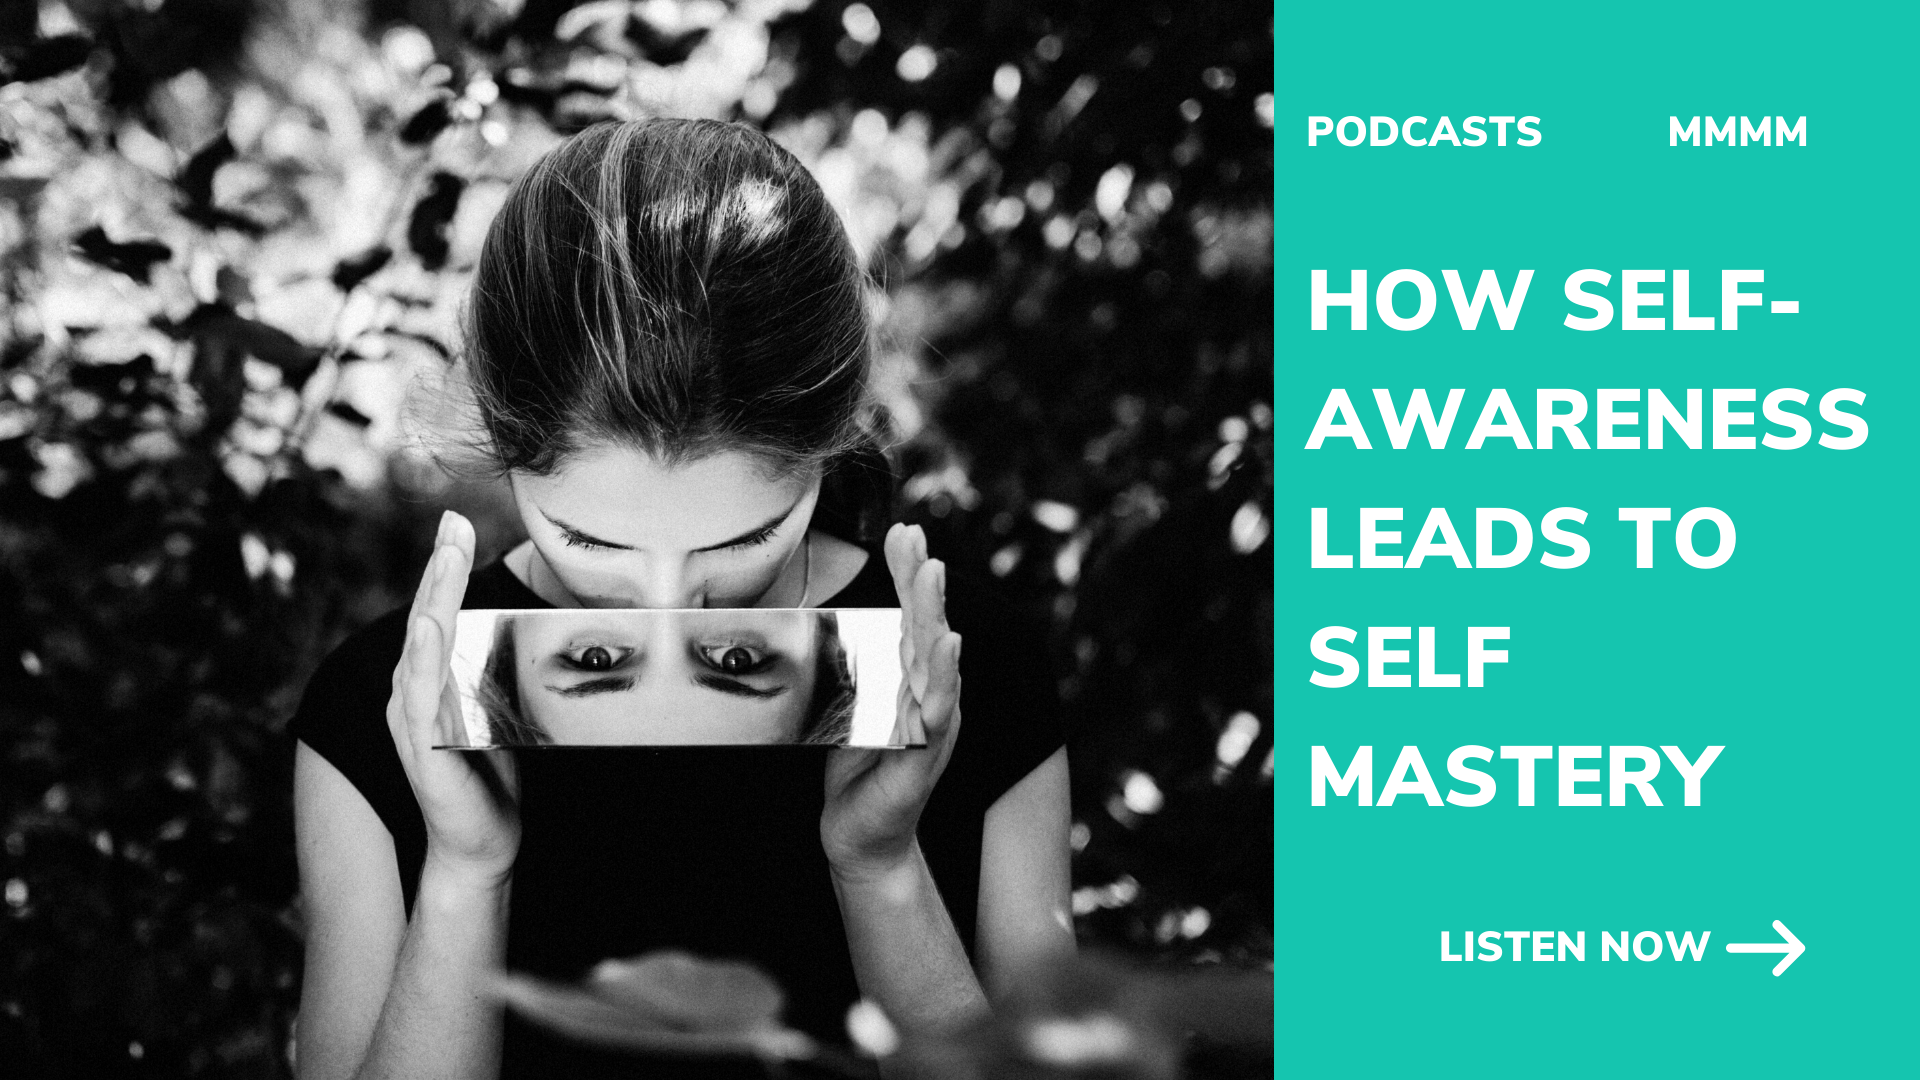 How self-awareness leads to self mastery